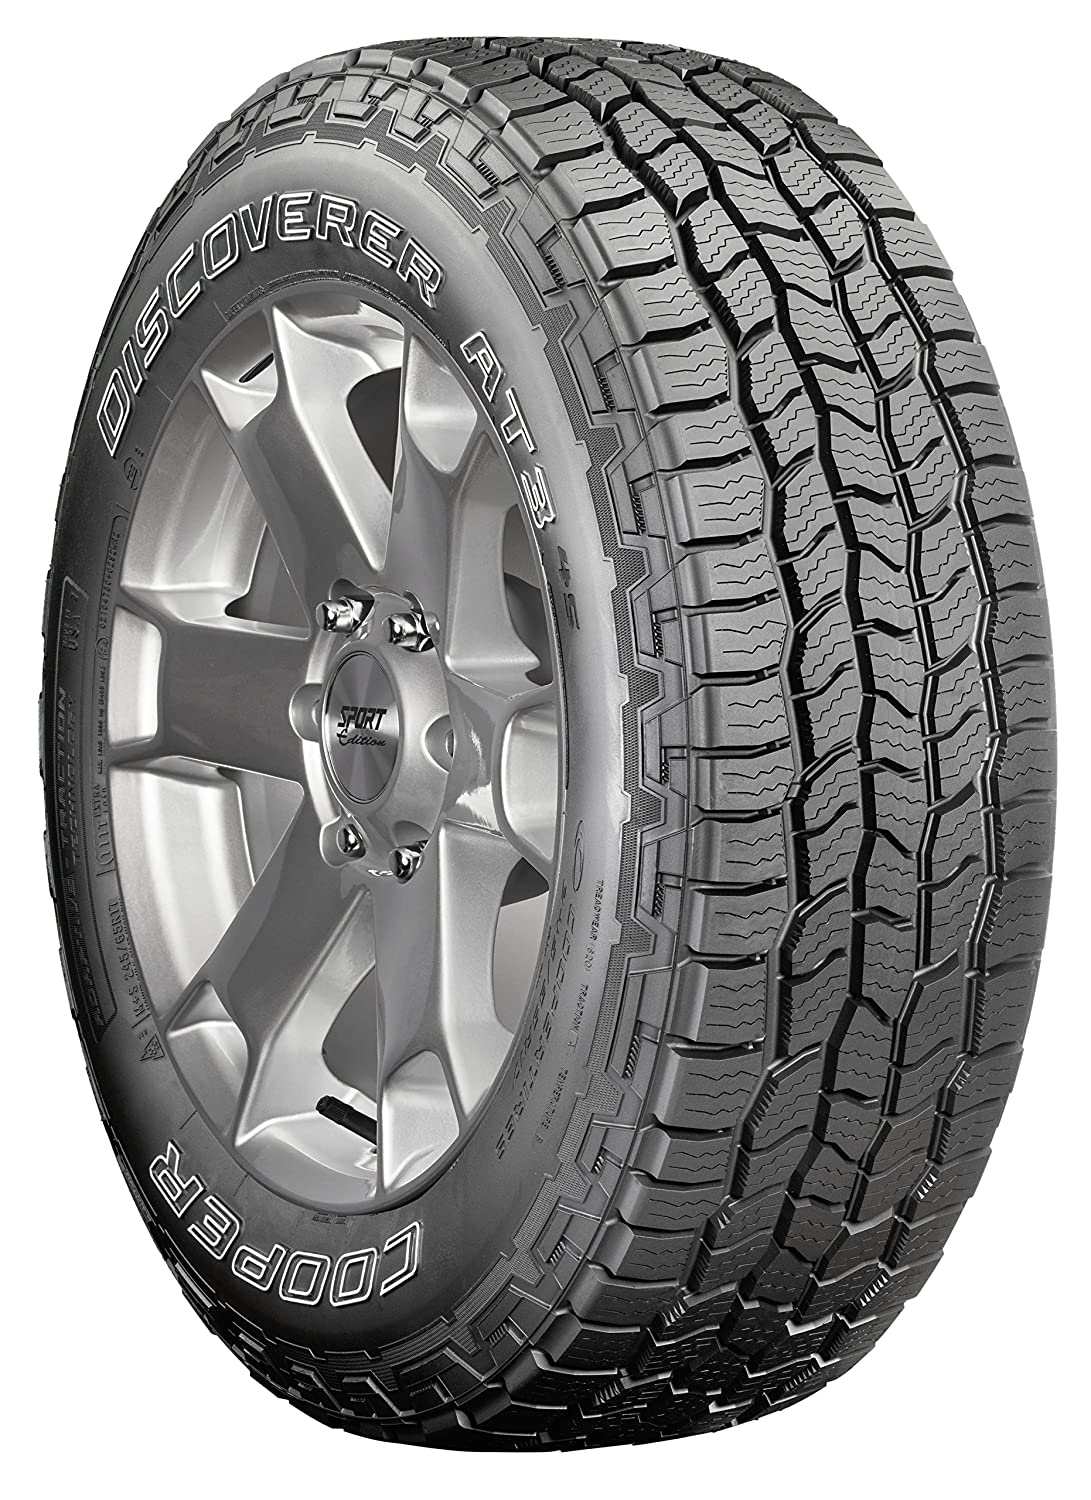 Cooper Discoverer A/T3 4S All-Terrain Radial Tire-265/50R20XL 111T 90000032705